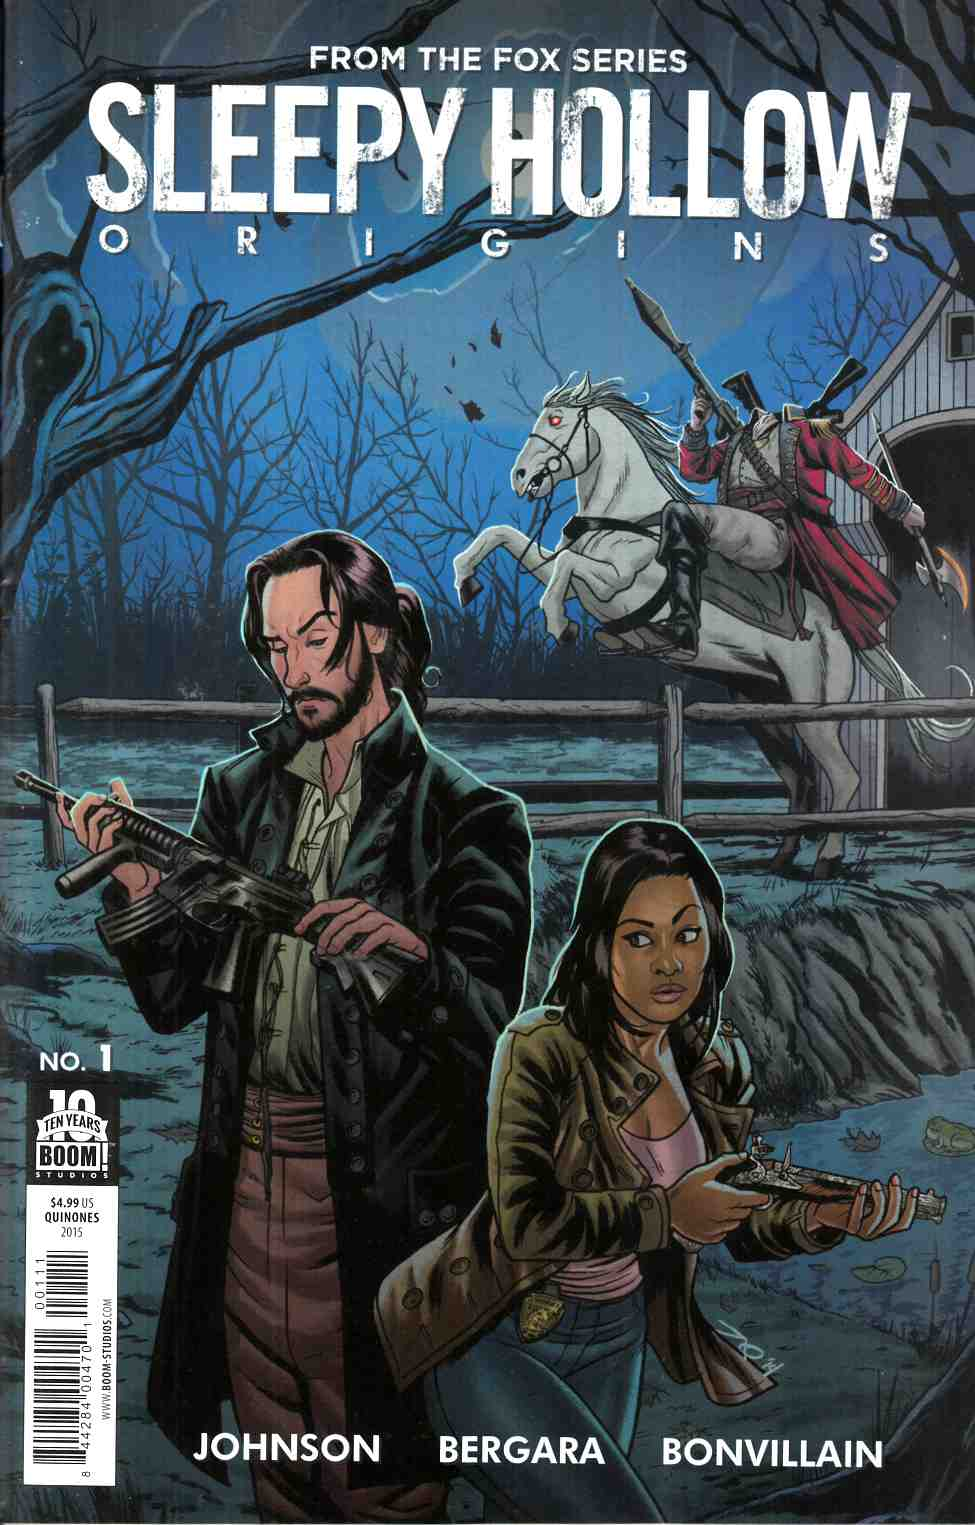 Sleepy Hollow Origins #1 [Bom Comic] LARGE